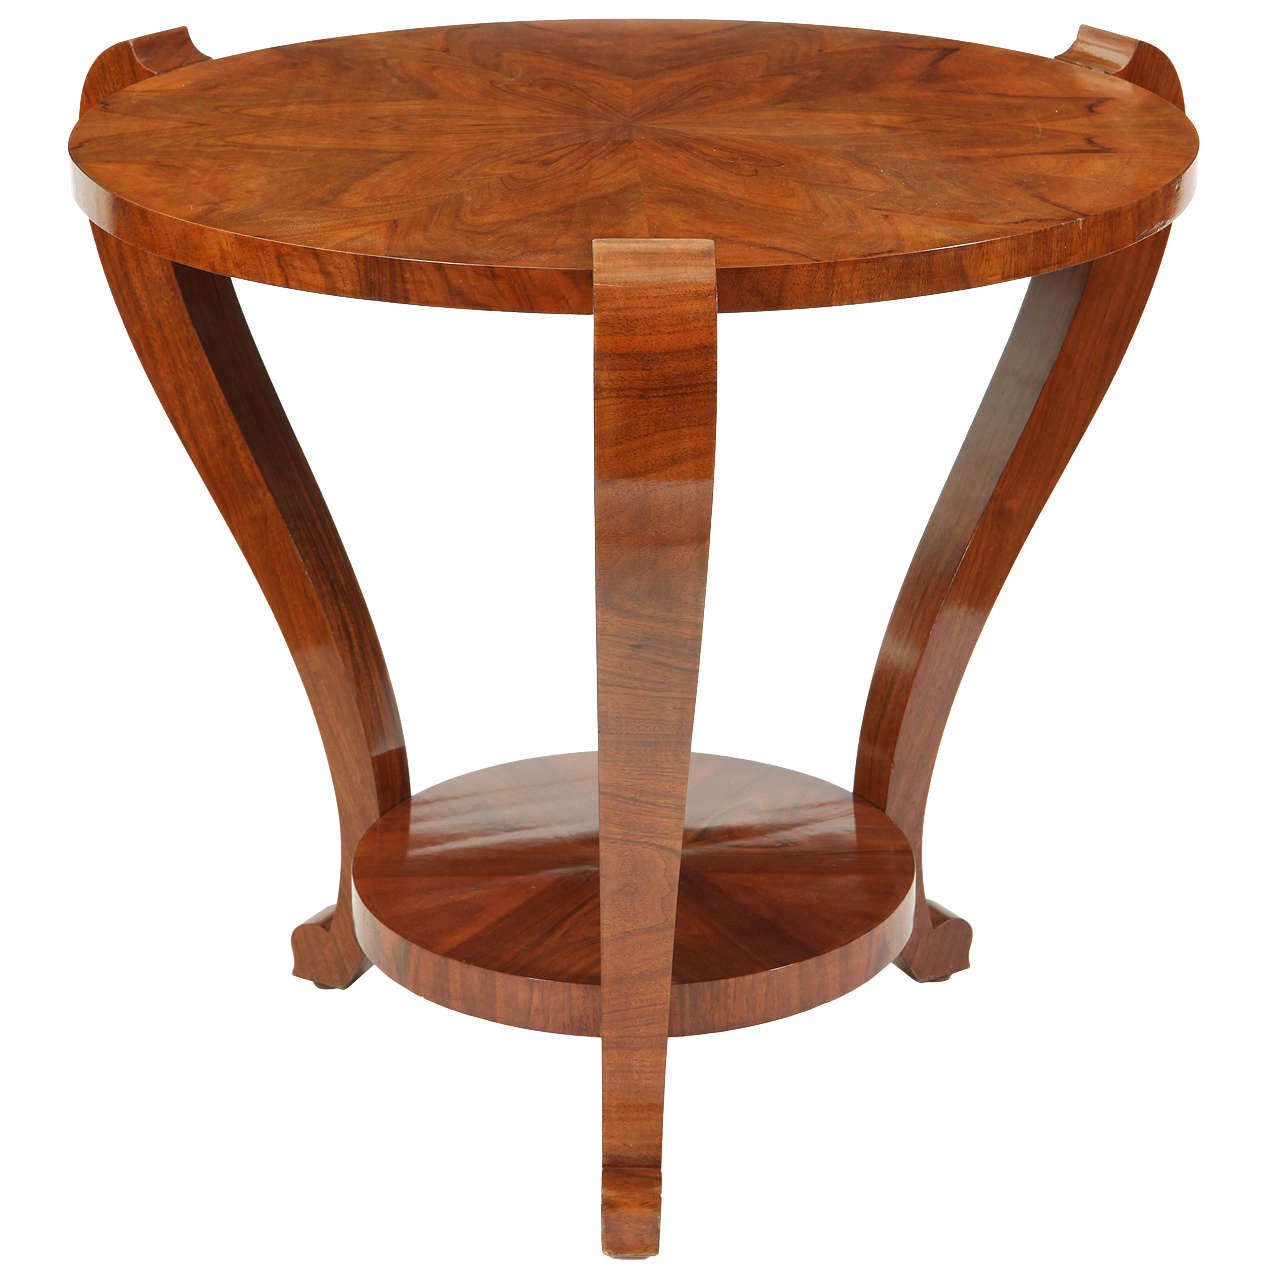 Walnut round art deco side table 1930s at 1stdibs walnut round art deco side table 1930s geotapseo Images